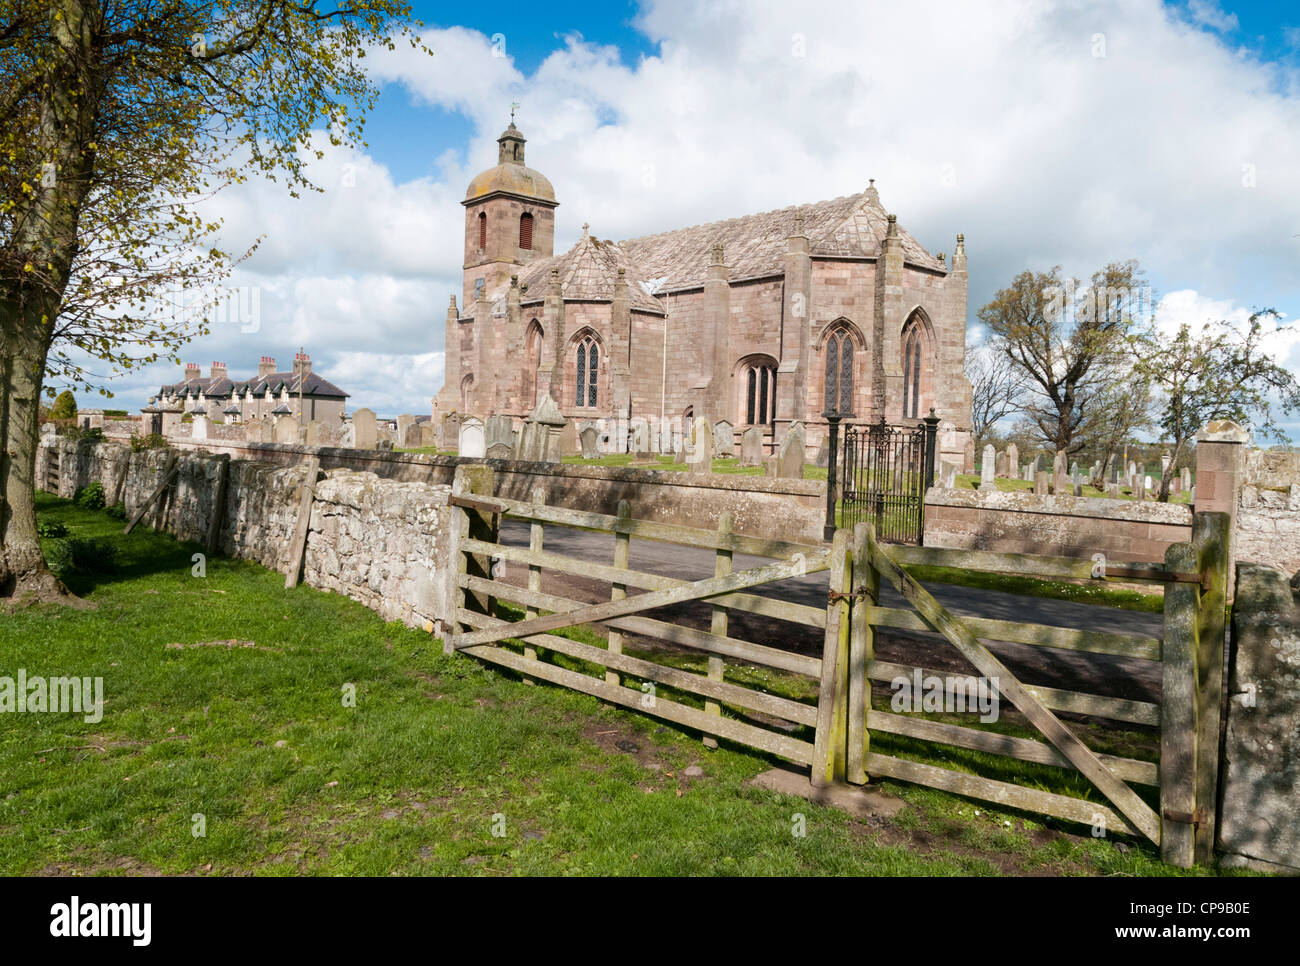 Ladykirk church built on the orders of King James IV of Scotland - Stock Image